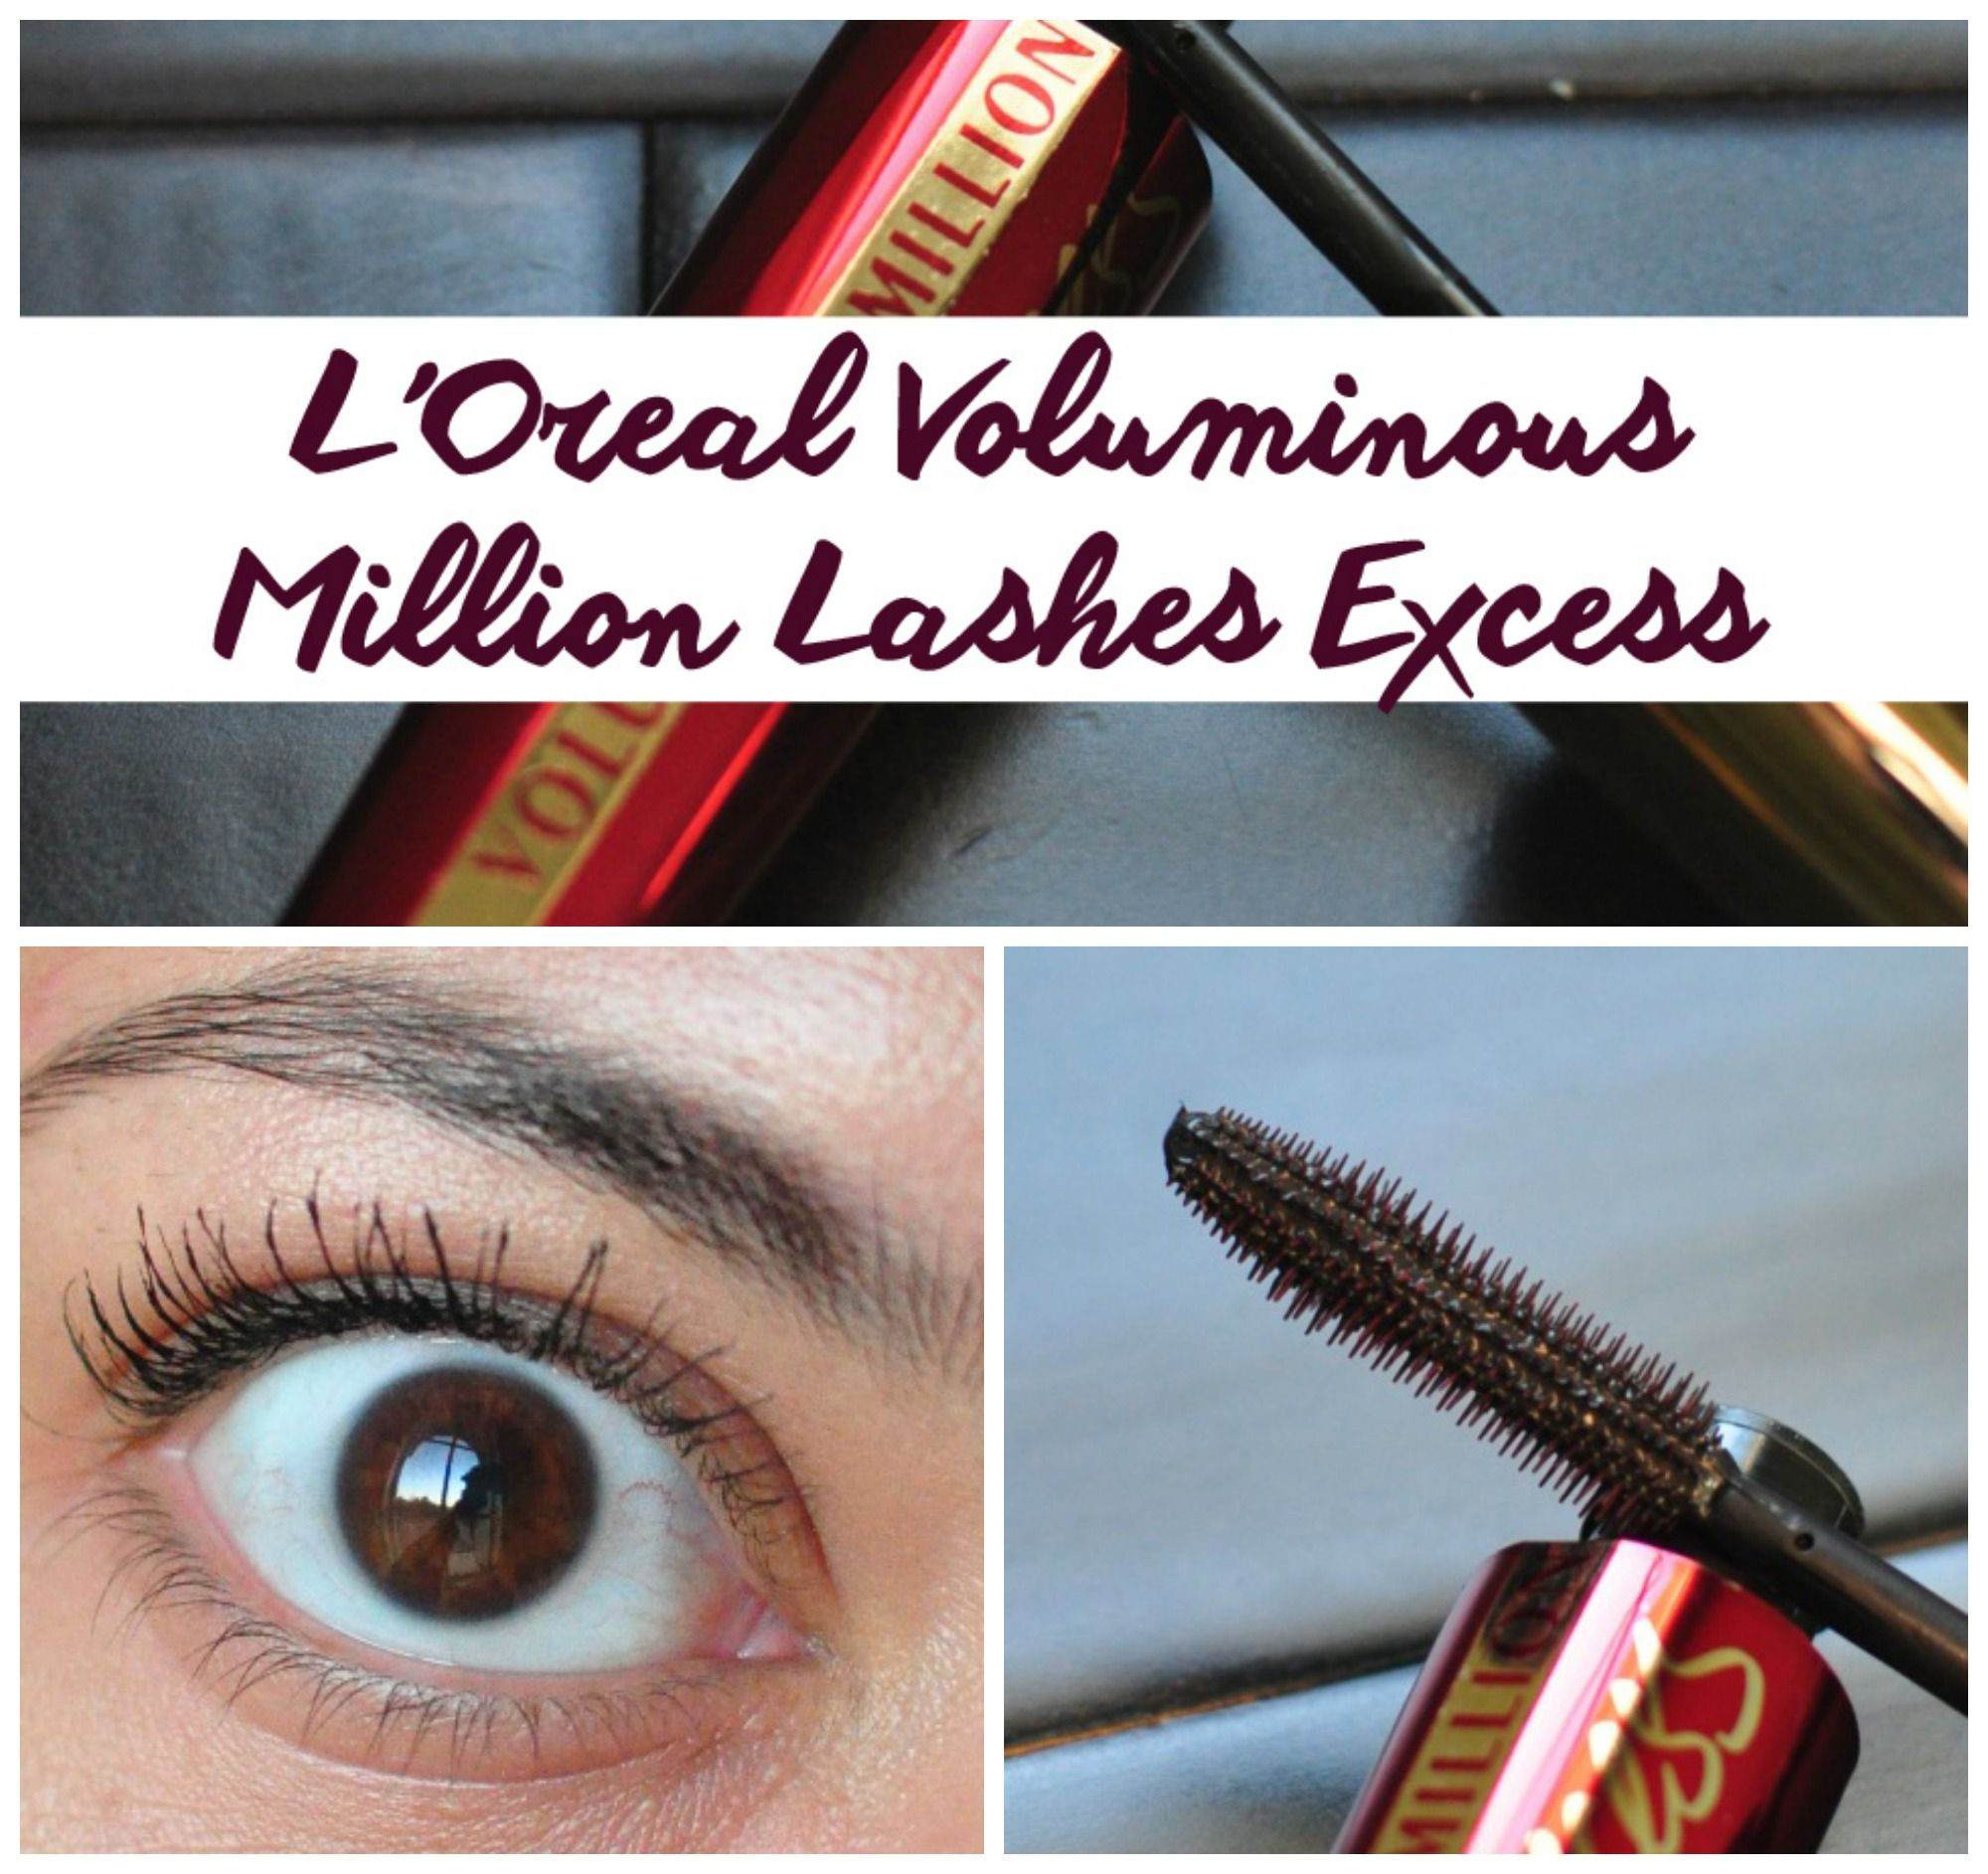 64978e1b31e Review of L'Oreal Voluminous Million Lashes Excess mascara and a comparison  to other L'Oreal Mascaras.